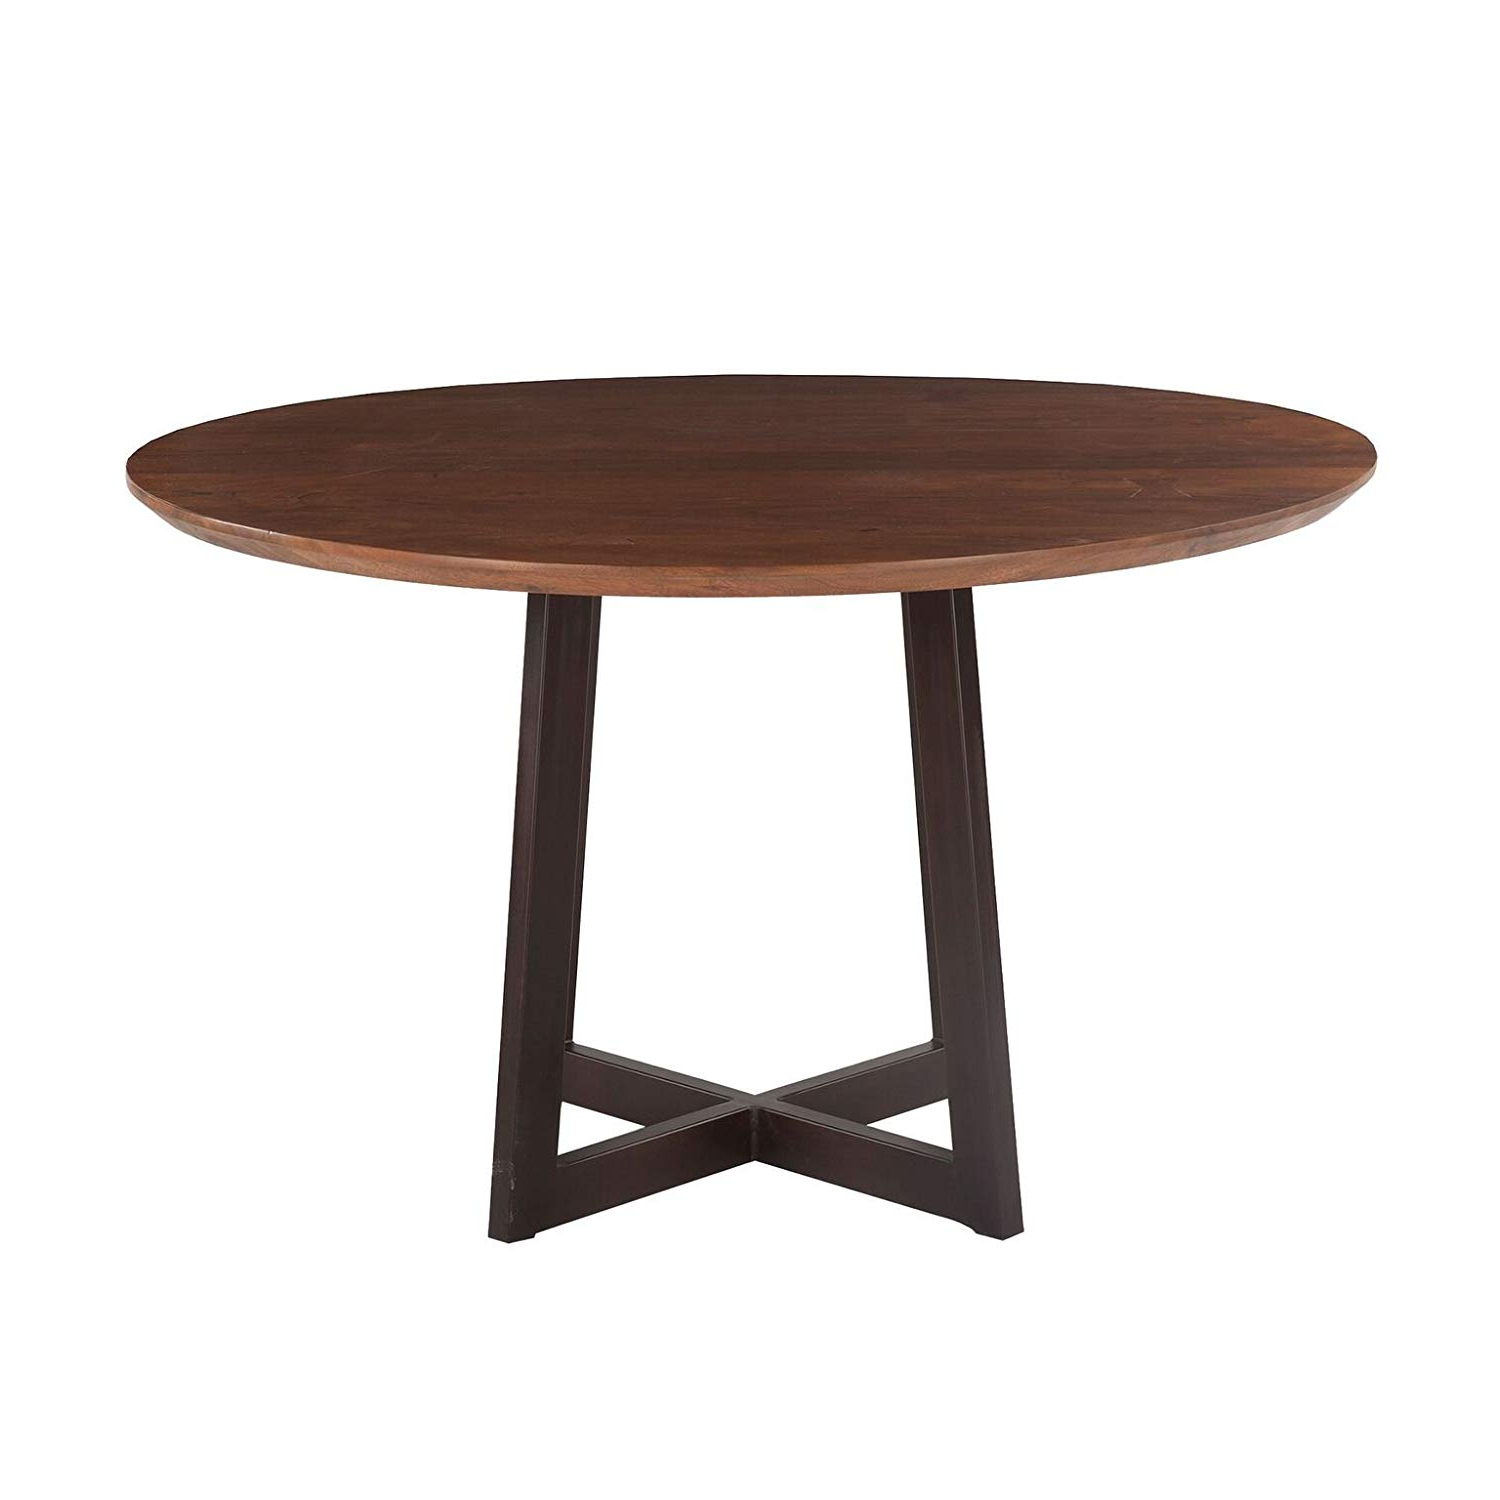 Famous Acacia Top Dining Tables With Metal Legs With Regard To Amazon – World Interiors Acacia Wood And Iron Round (View 14 of 25)